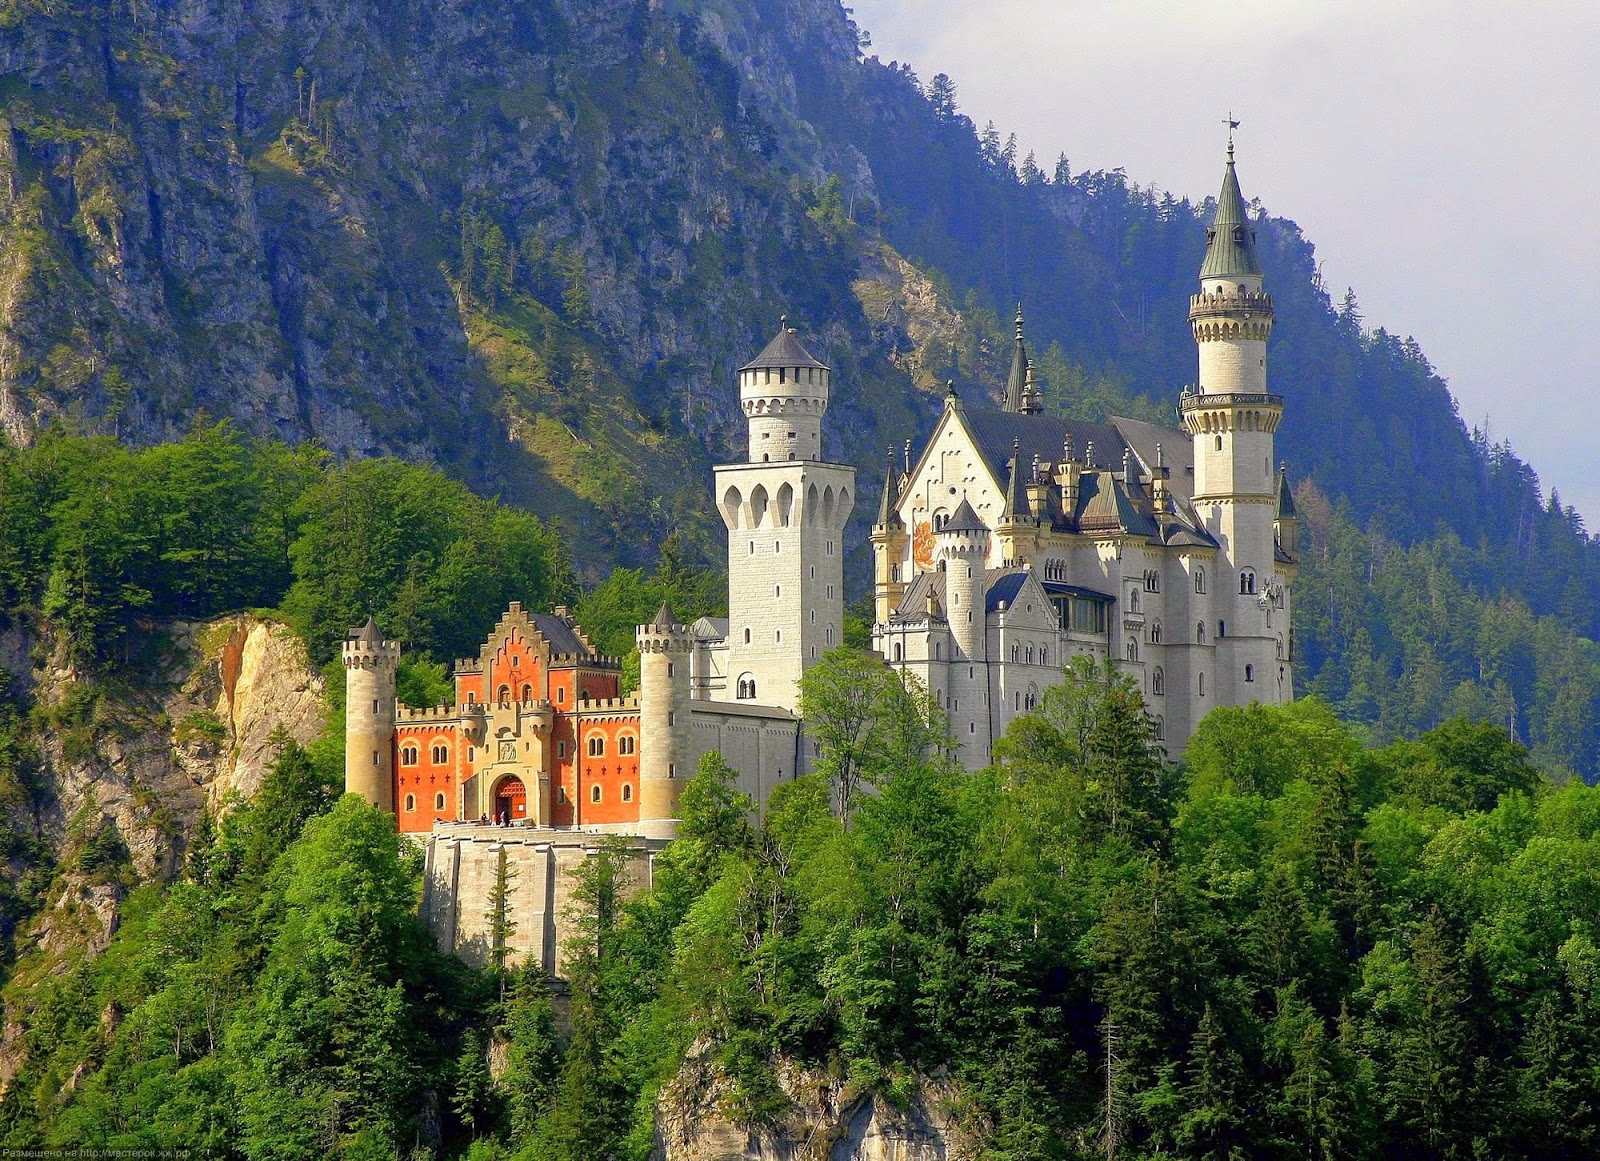 Castle concerts The Romantic Road, Neuschwanstein Castle: 8 Neuschwanstein Castle Wallpaper HD